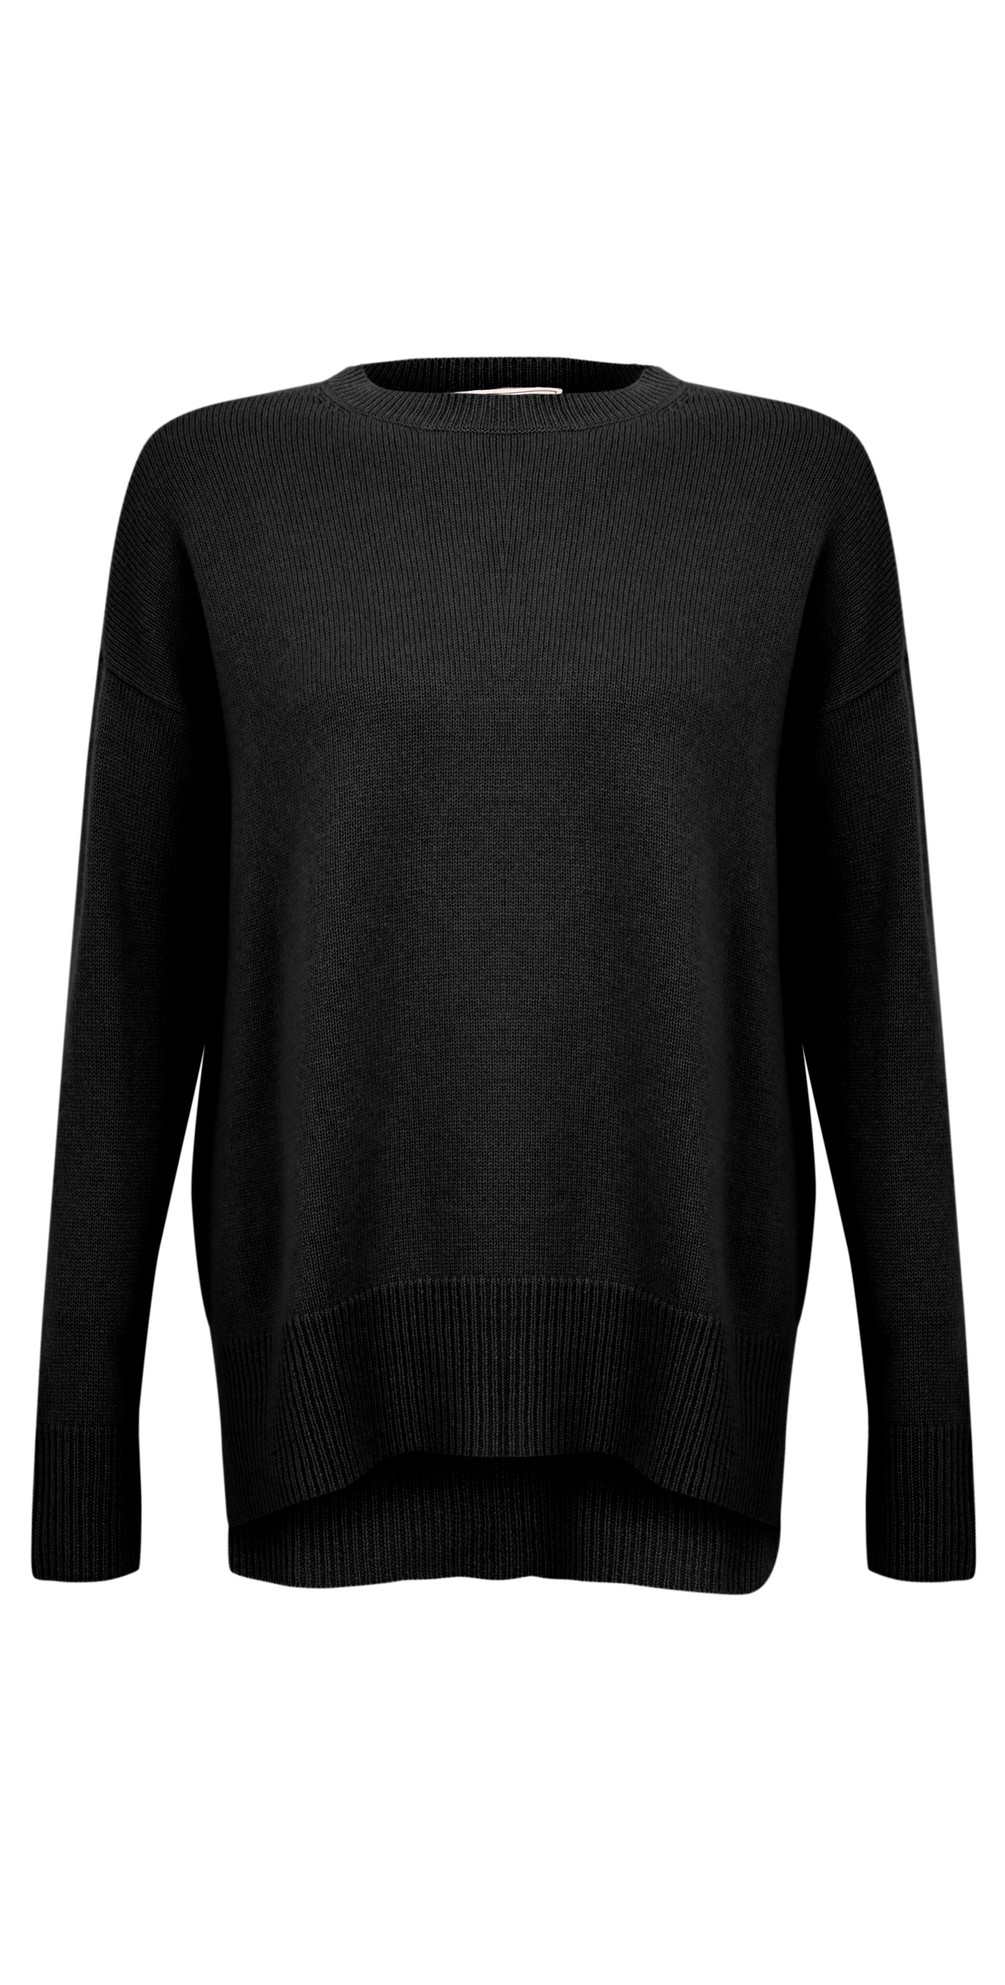 Cashmere Soft Cable Knit jumper main image